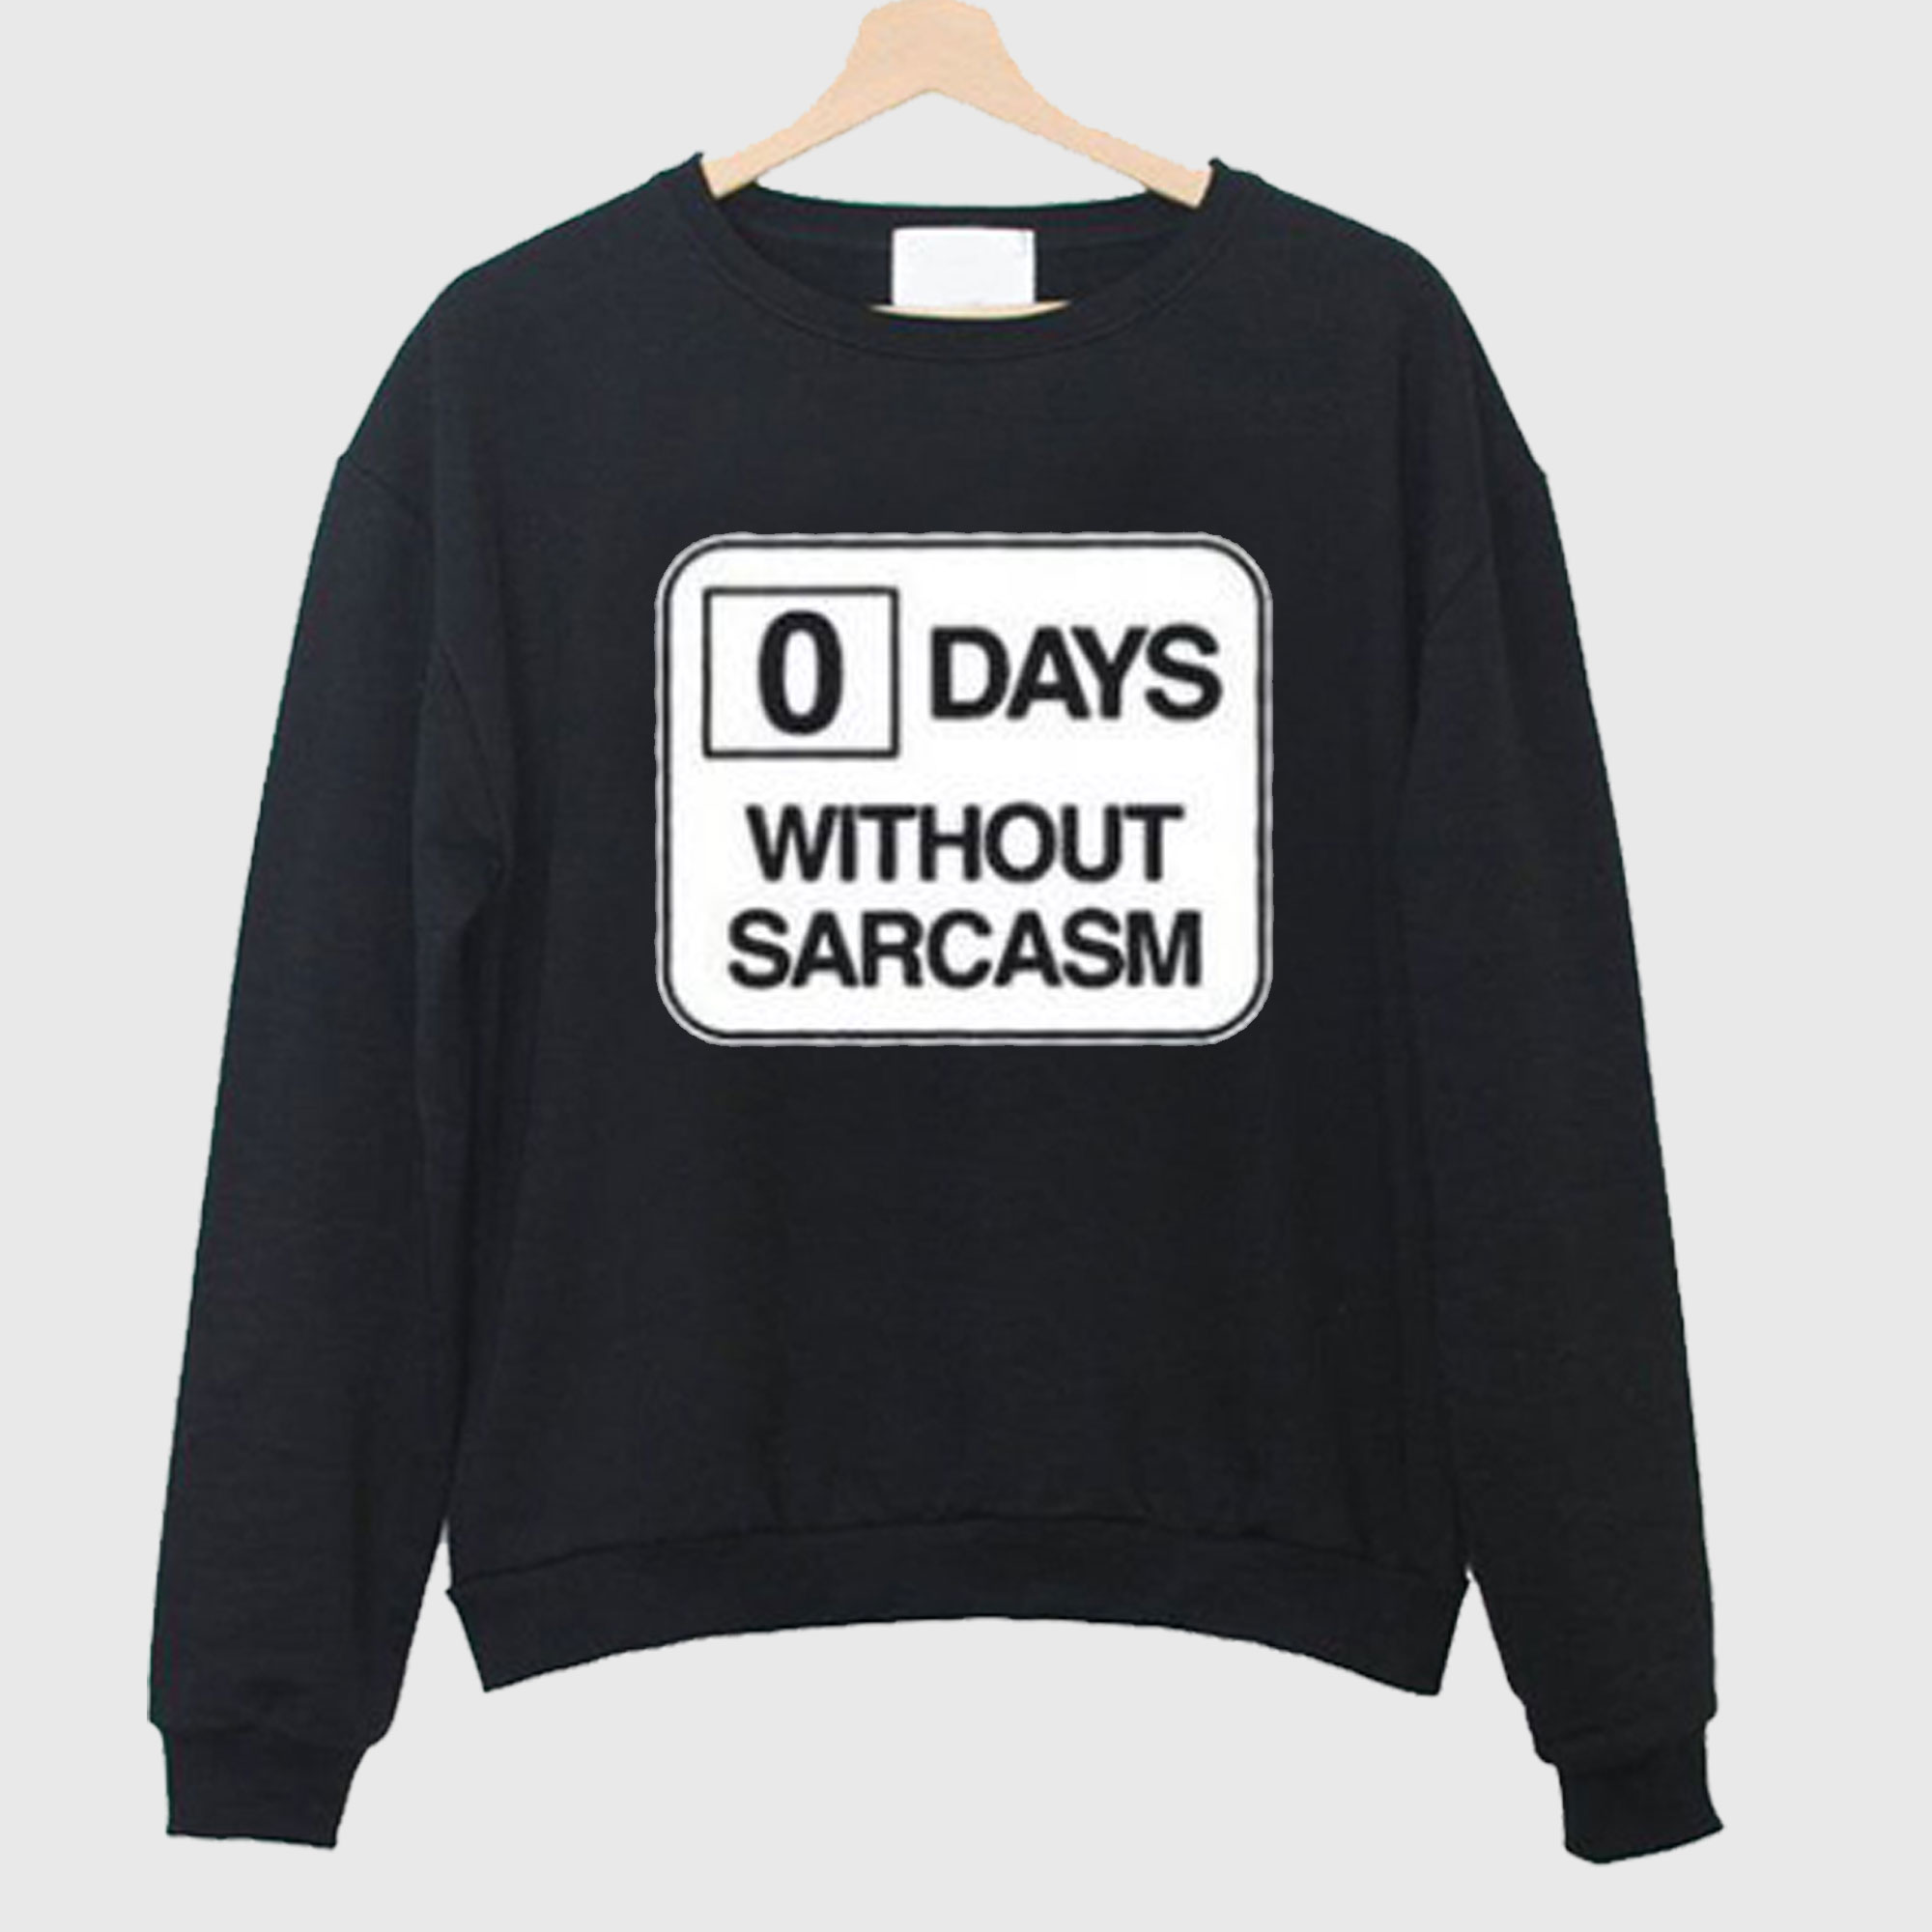 0 days without sarcasm Sweatshirt